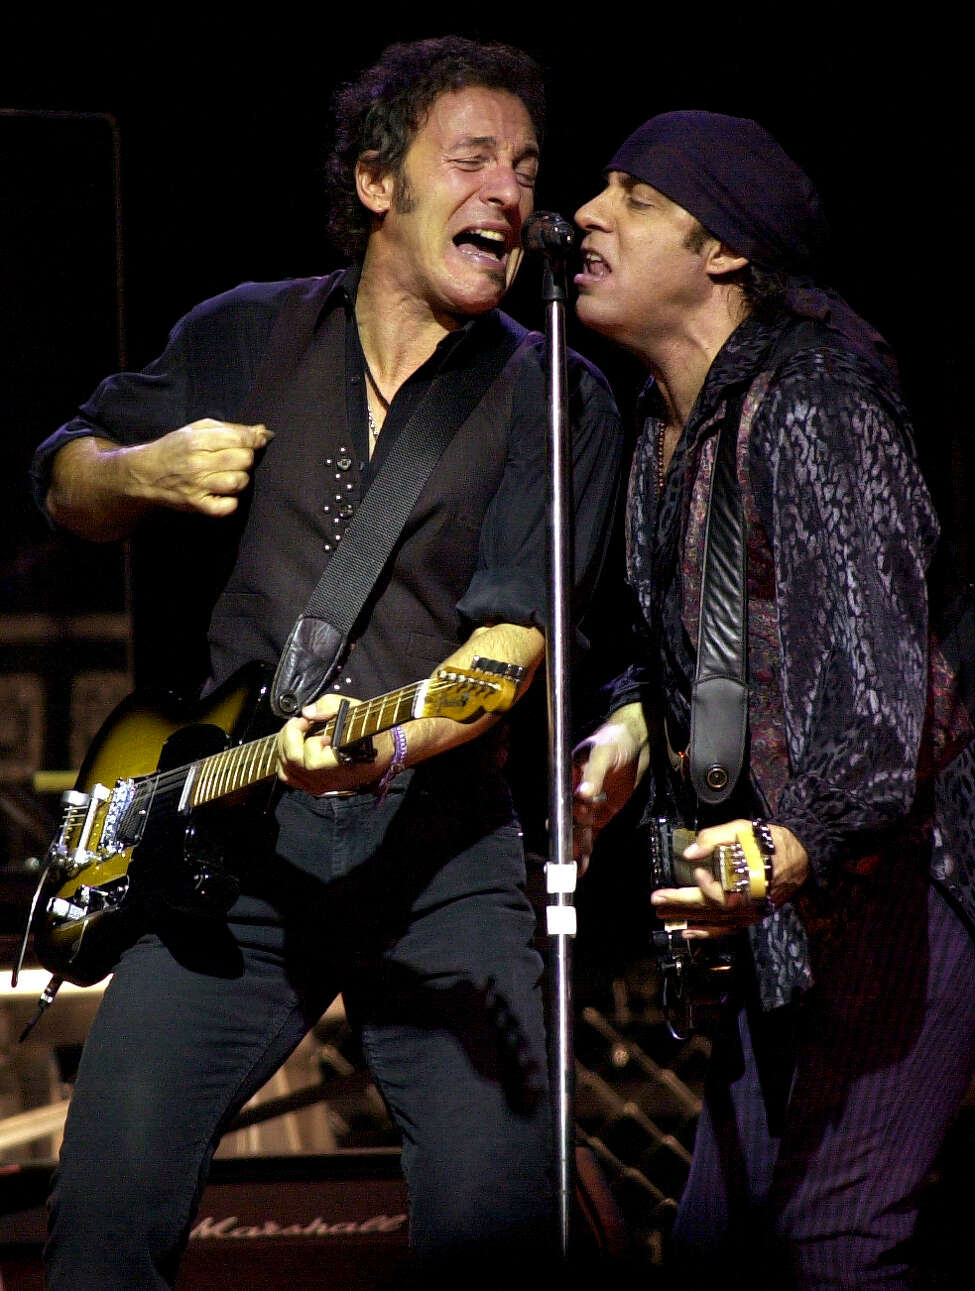 Times Union staff photo by Lori Kane Bruce Springsteen and Steven Van Zandt sing to a sold out crowd at the Pepsi Arena on Friday, December 13, 2002. Springsteen had his E Street band with him.